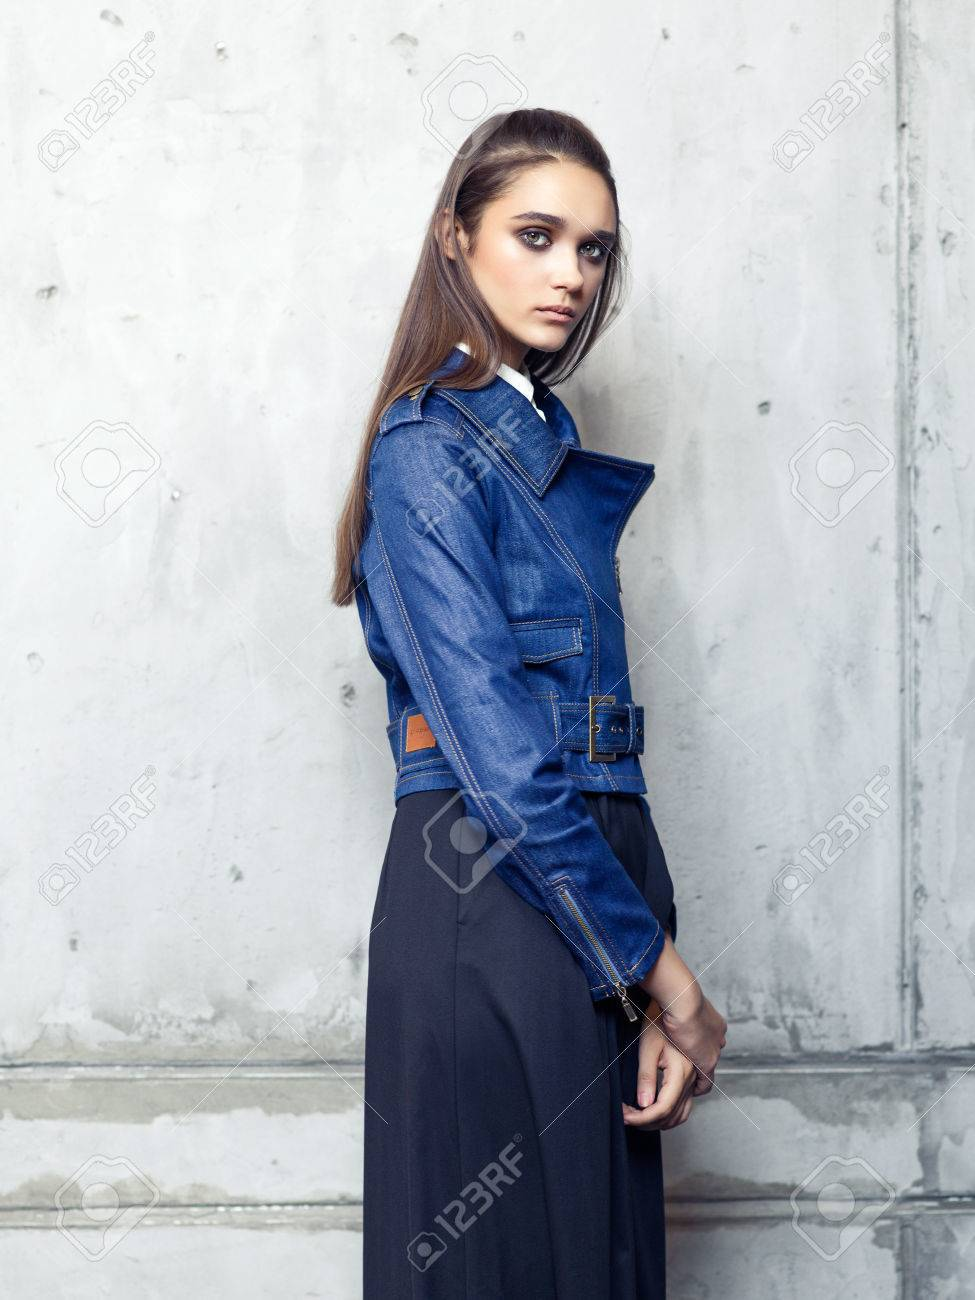 7222d67231 Fashion model wearing denim jacket and long black skirt posing in studio on  concrete wall Stock